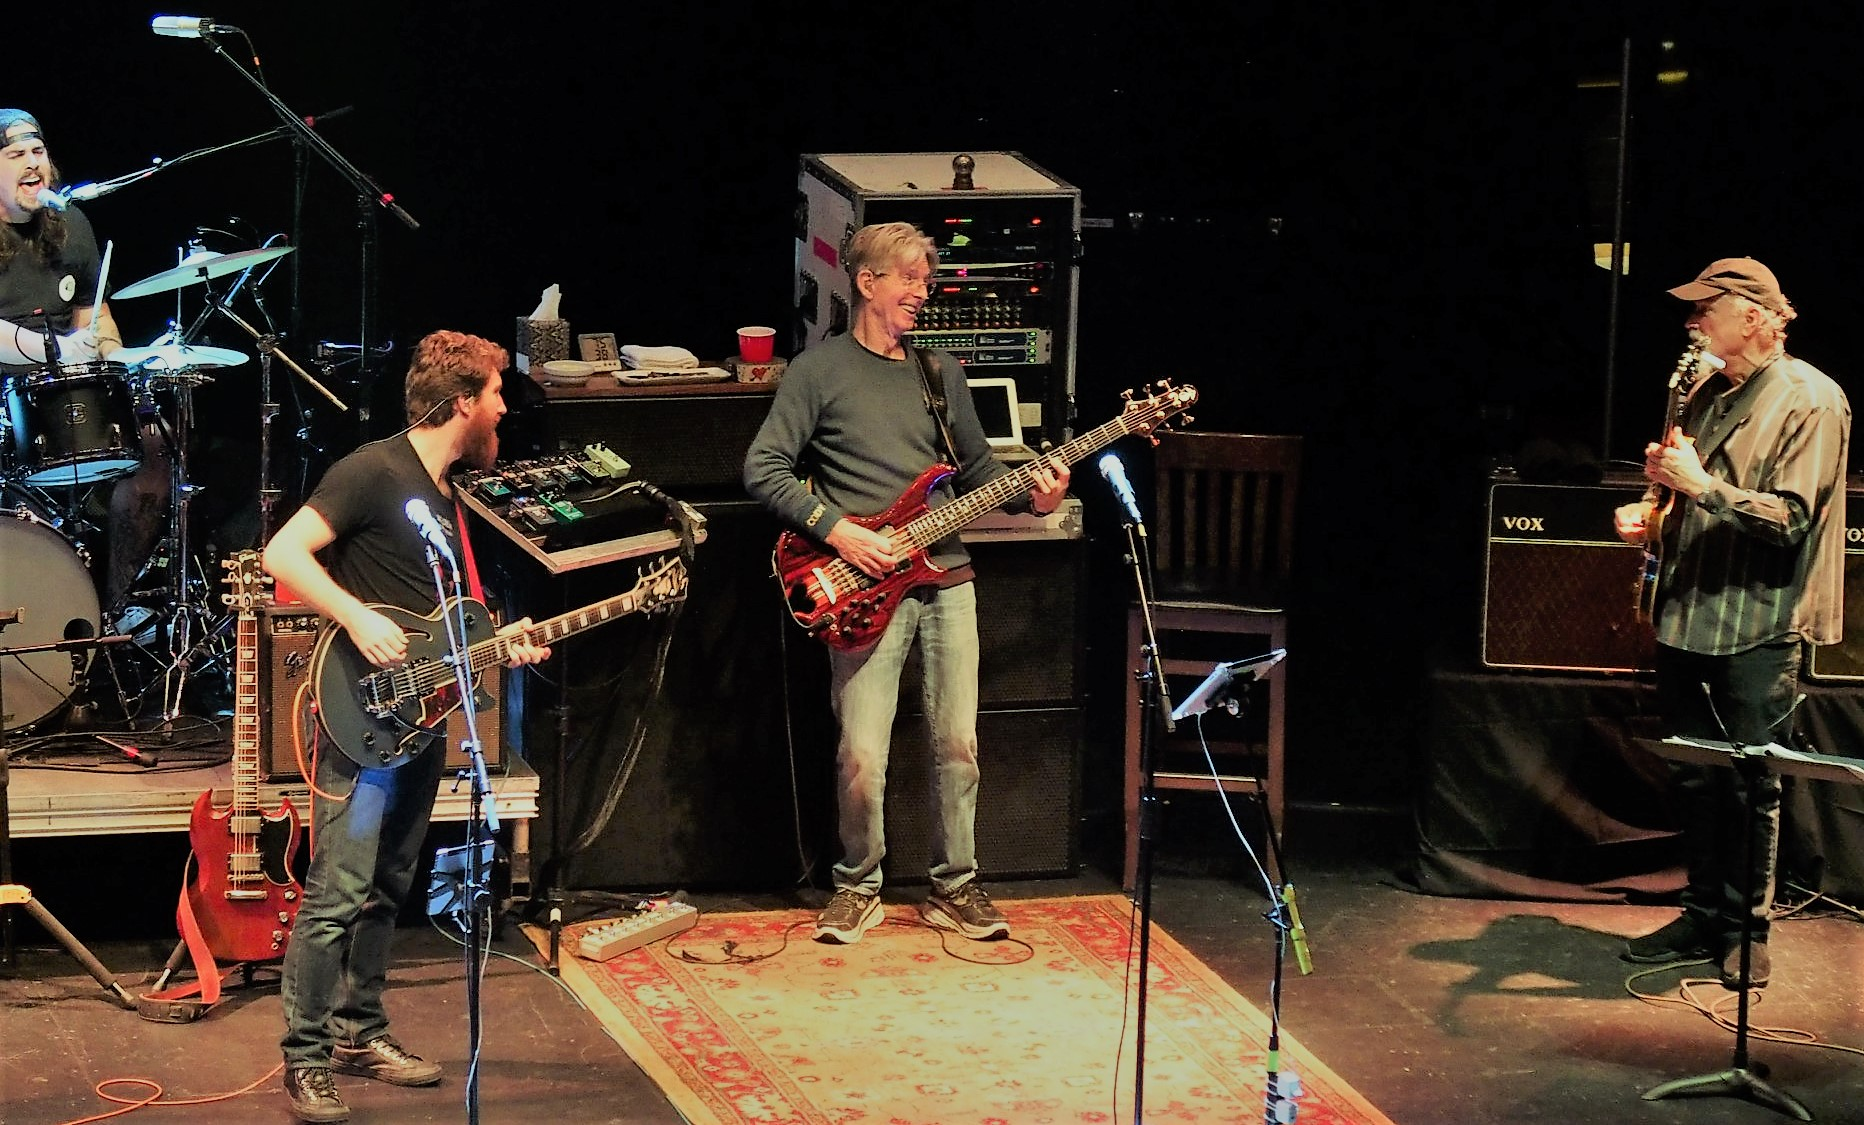 Alex Koford, Grahame Lesh, Phil Lesh and John Scofield | Captiol Theatre | March 15th, 2018